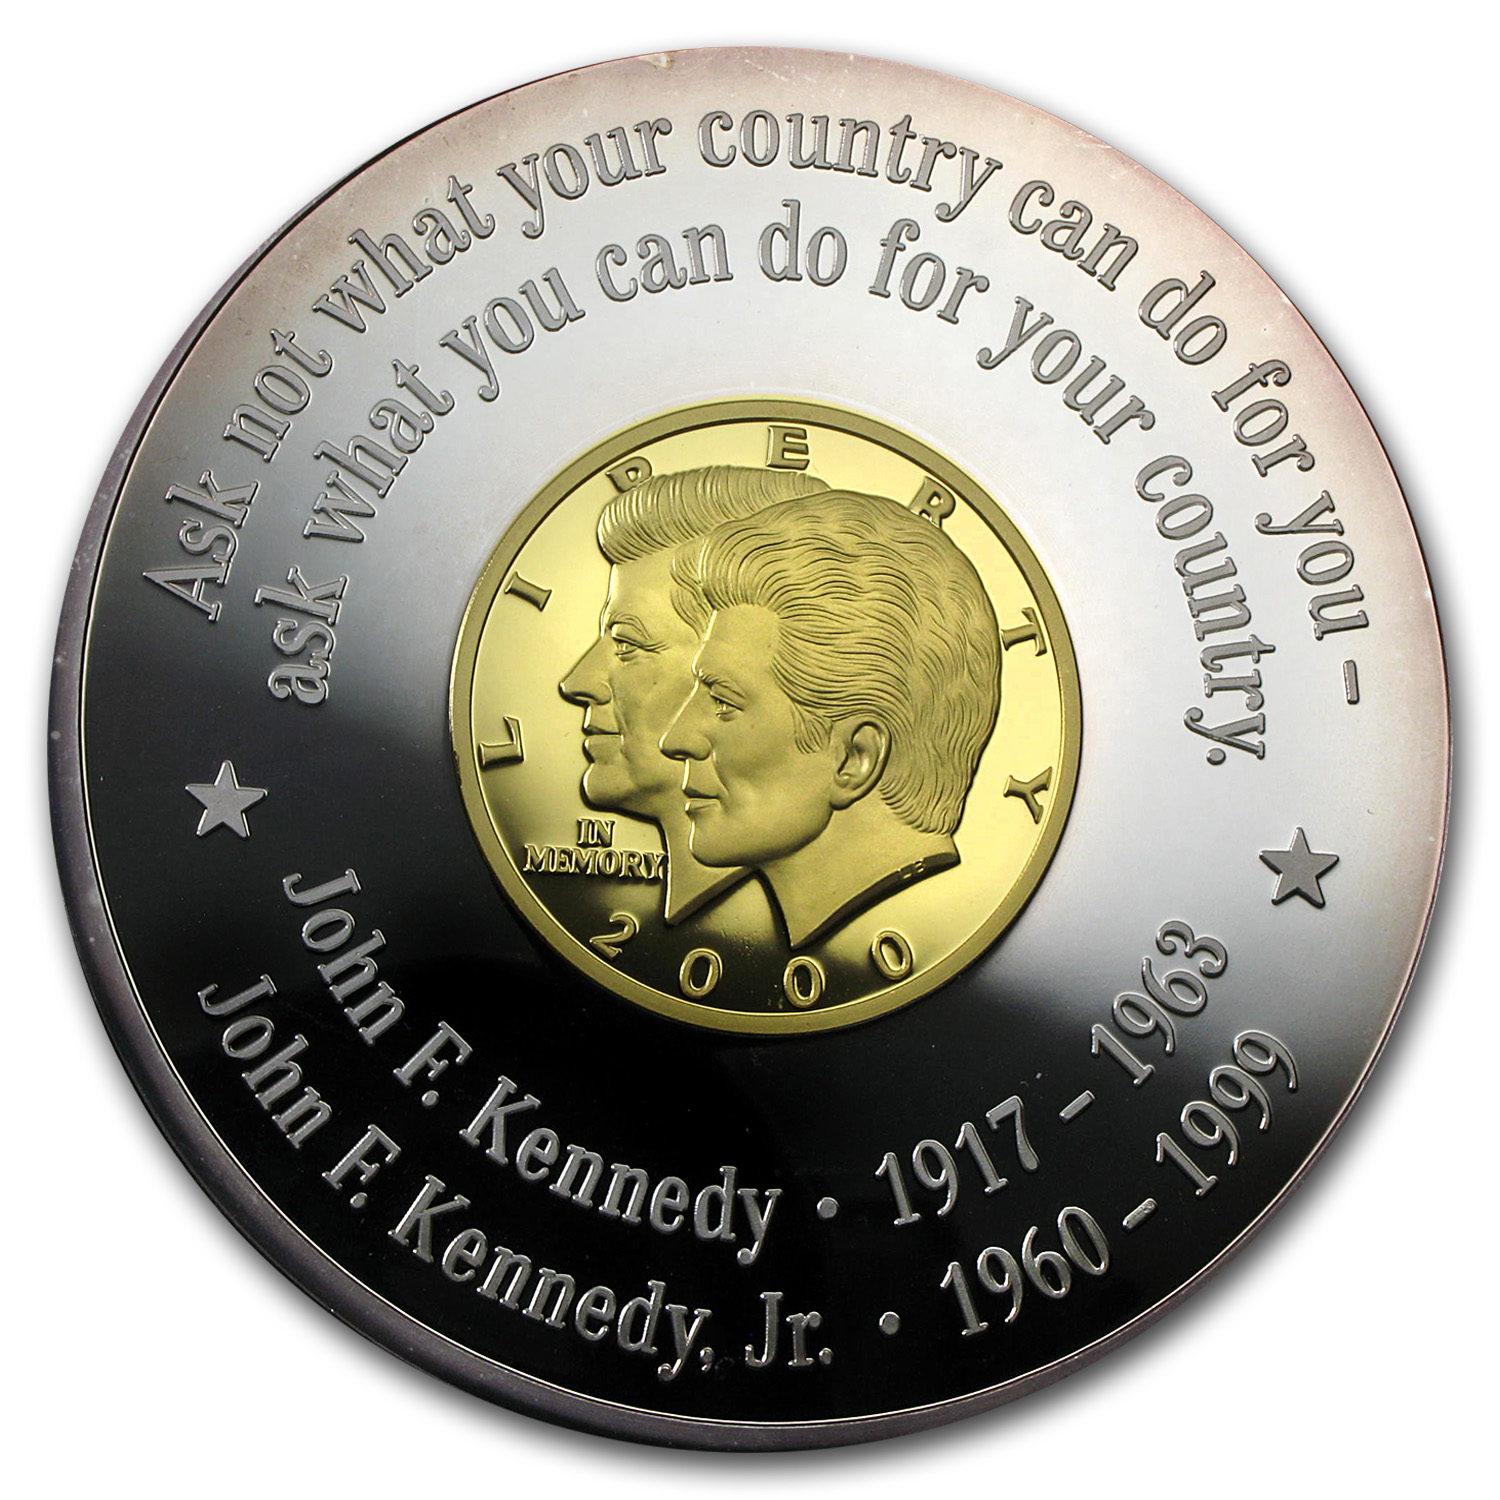 2000 Liberia 1/2 oz Proof Gold/Silver 500 Dollars JFK & JFK Jr